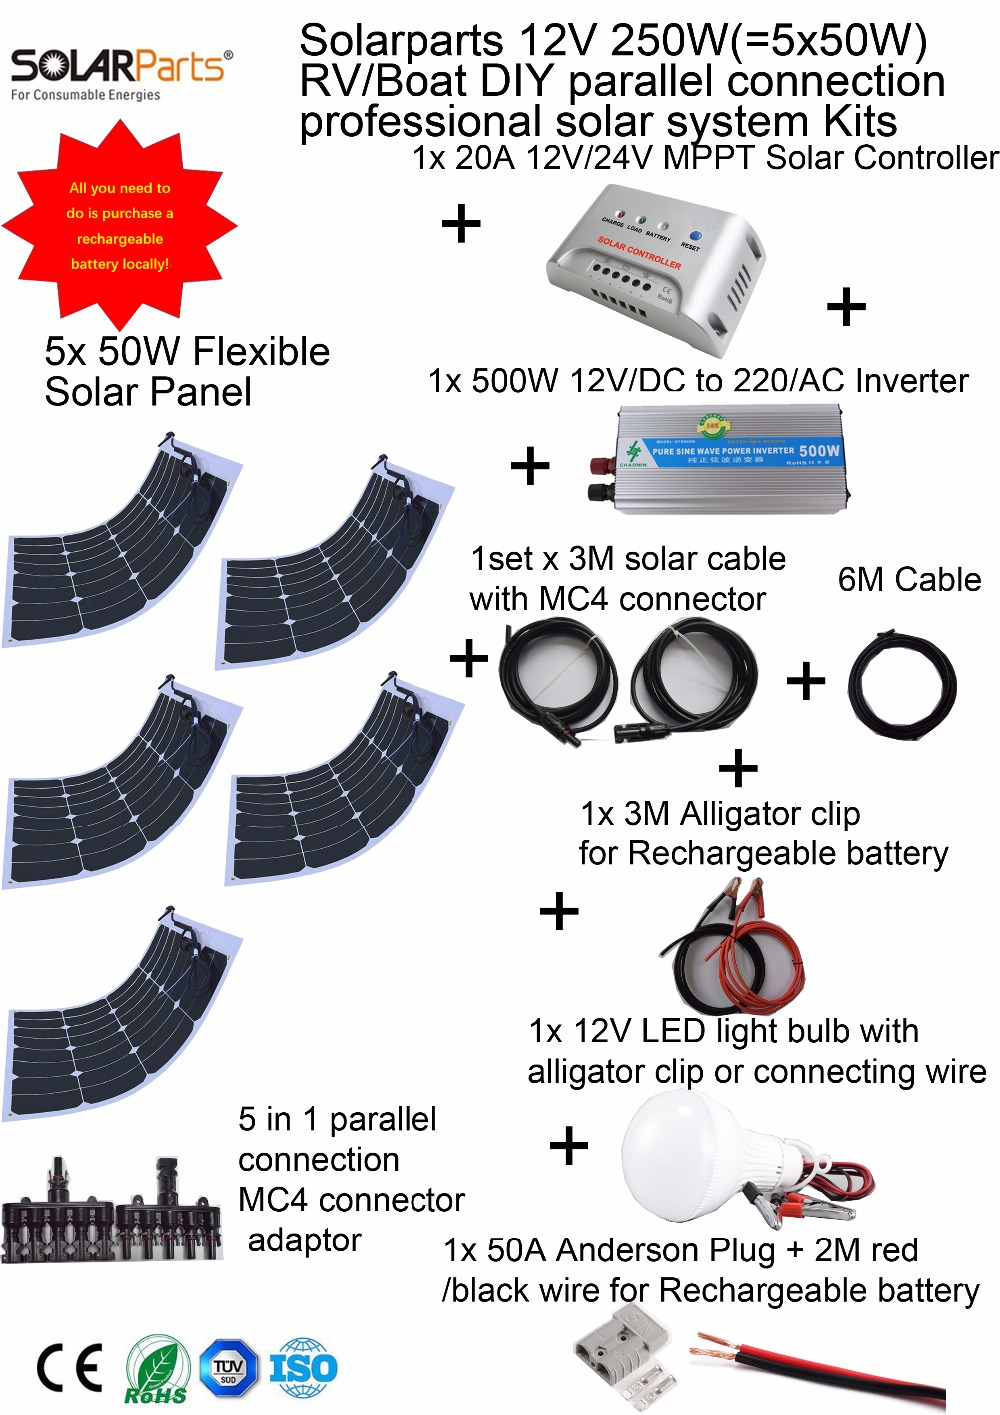 Solarparts 1x250W Professional DIY RV/Boat/Marine Kit Solar Home System 5x50W flexible solar panel MPPT controller Inverter LED solarparts 100w diy rv marine kits solar system1x100w flexible solar panel 12v 1 x10a 12v 24v solar controller set cables cheap